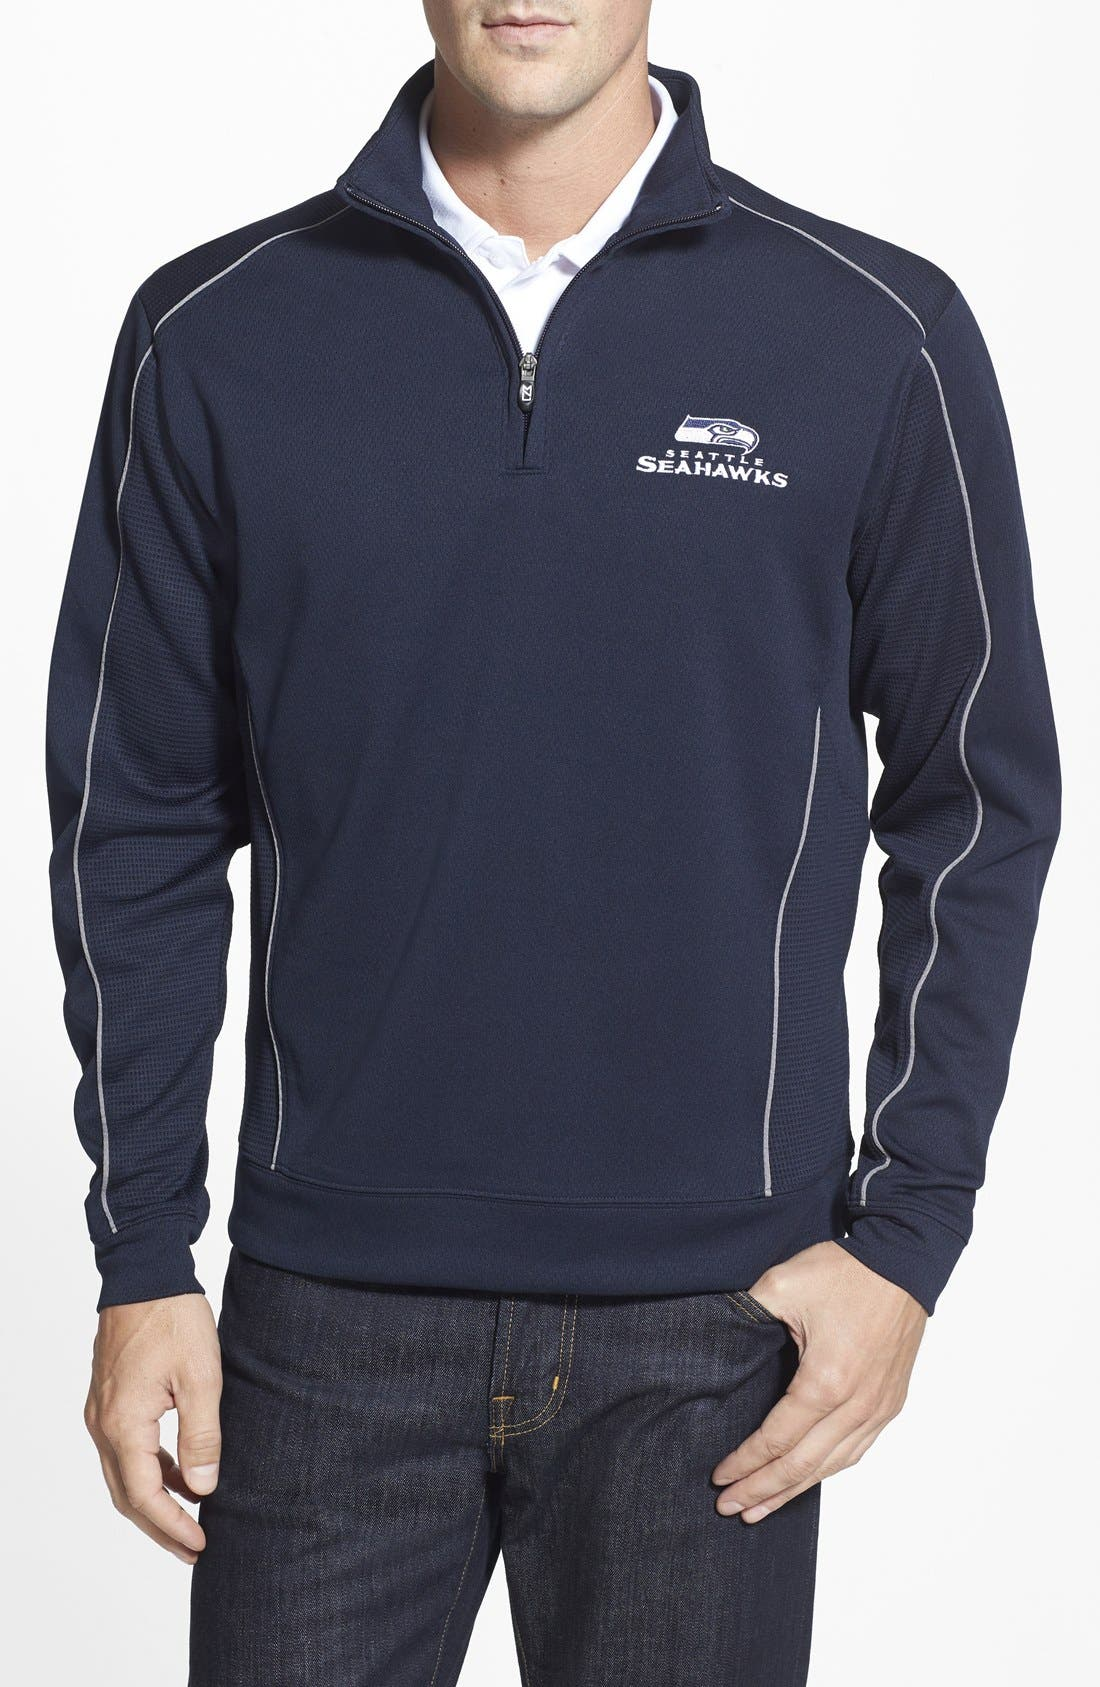 Cutter & Buck 'Seattle Seahawks - Edge' DryTec Moisture Wicking Half Zip Pullover (Big & Tall)